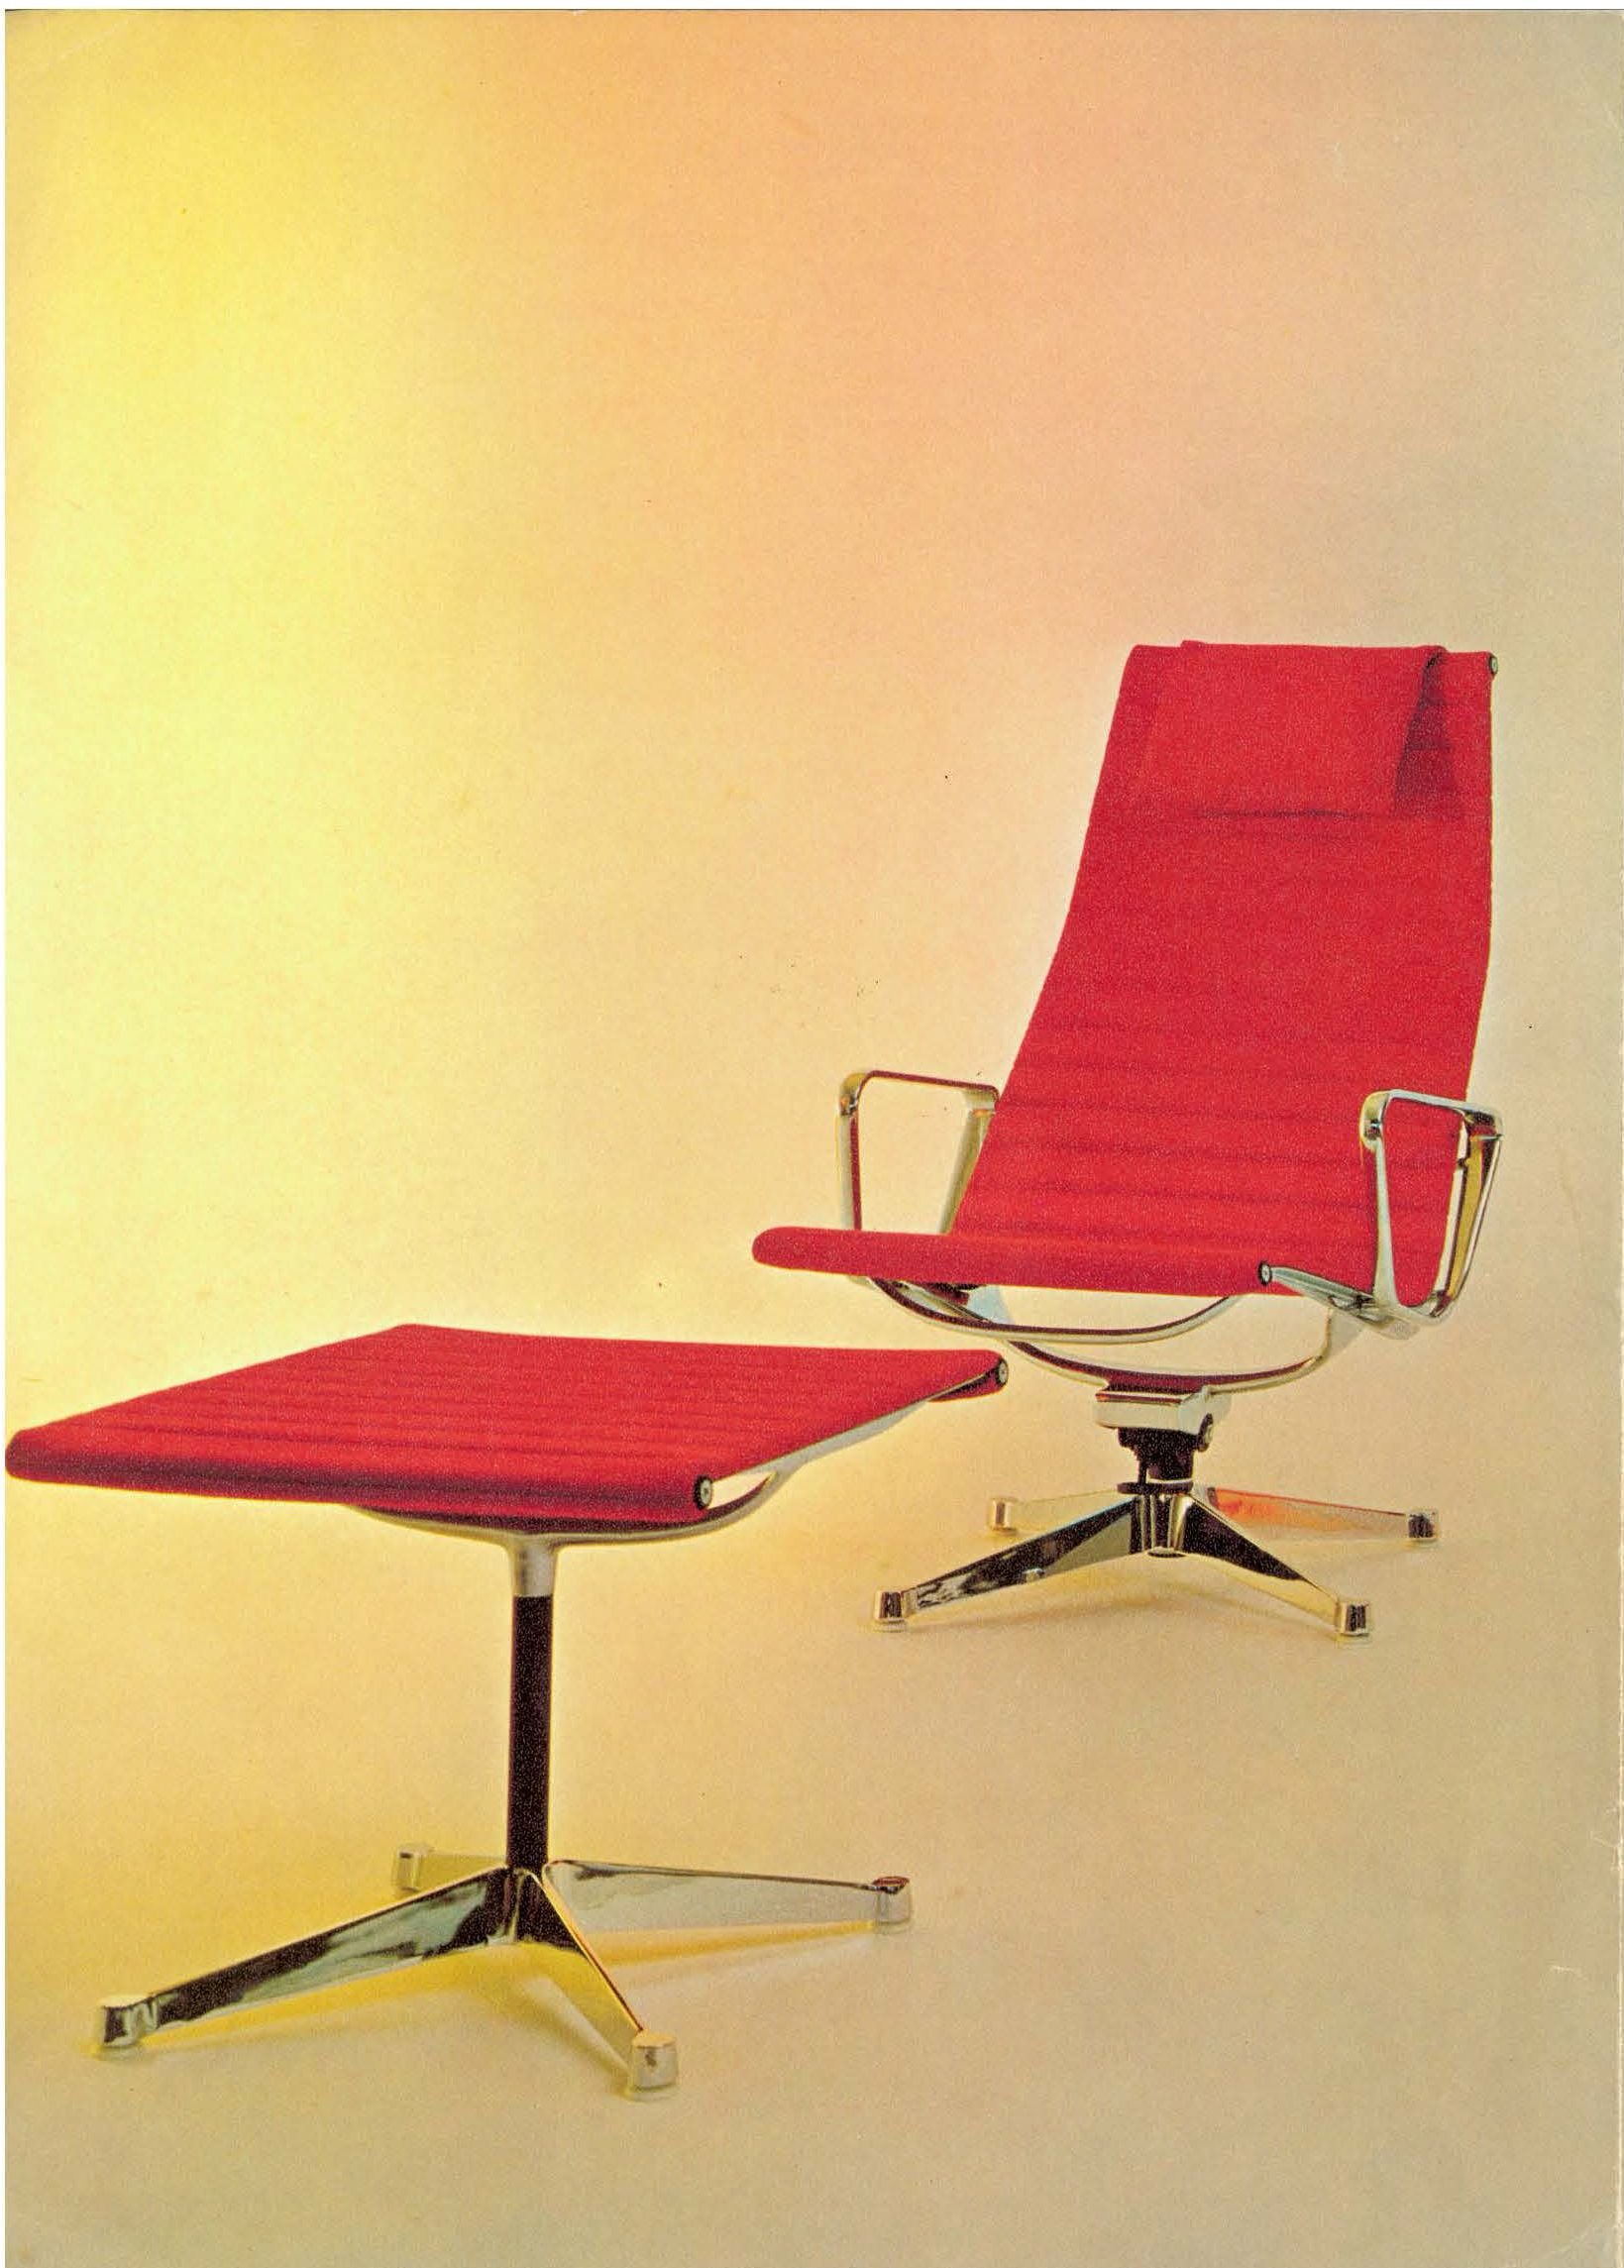 1969 eames aluminum group made in europe by fehlbaum operating as rh pinterest com